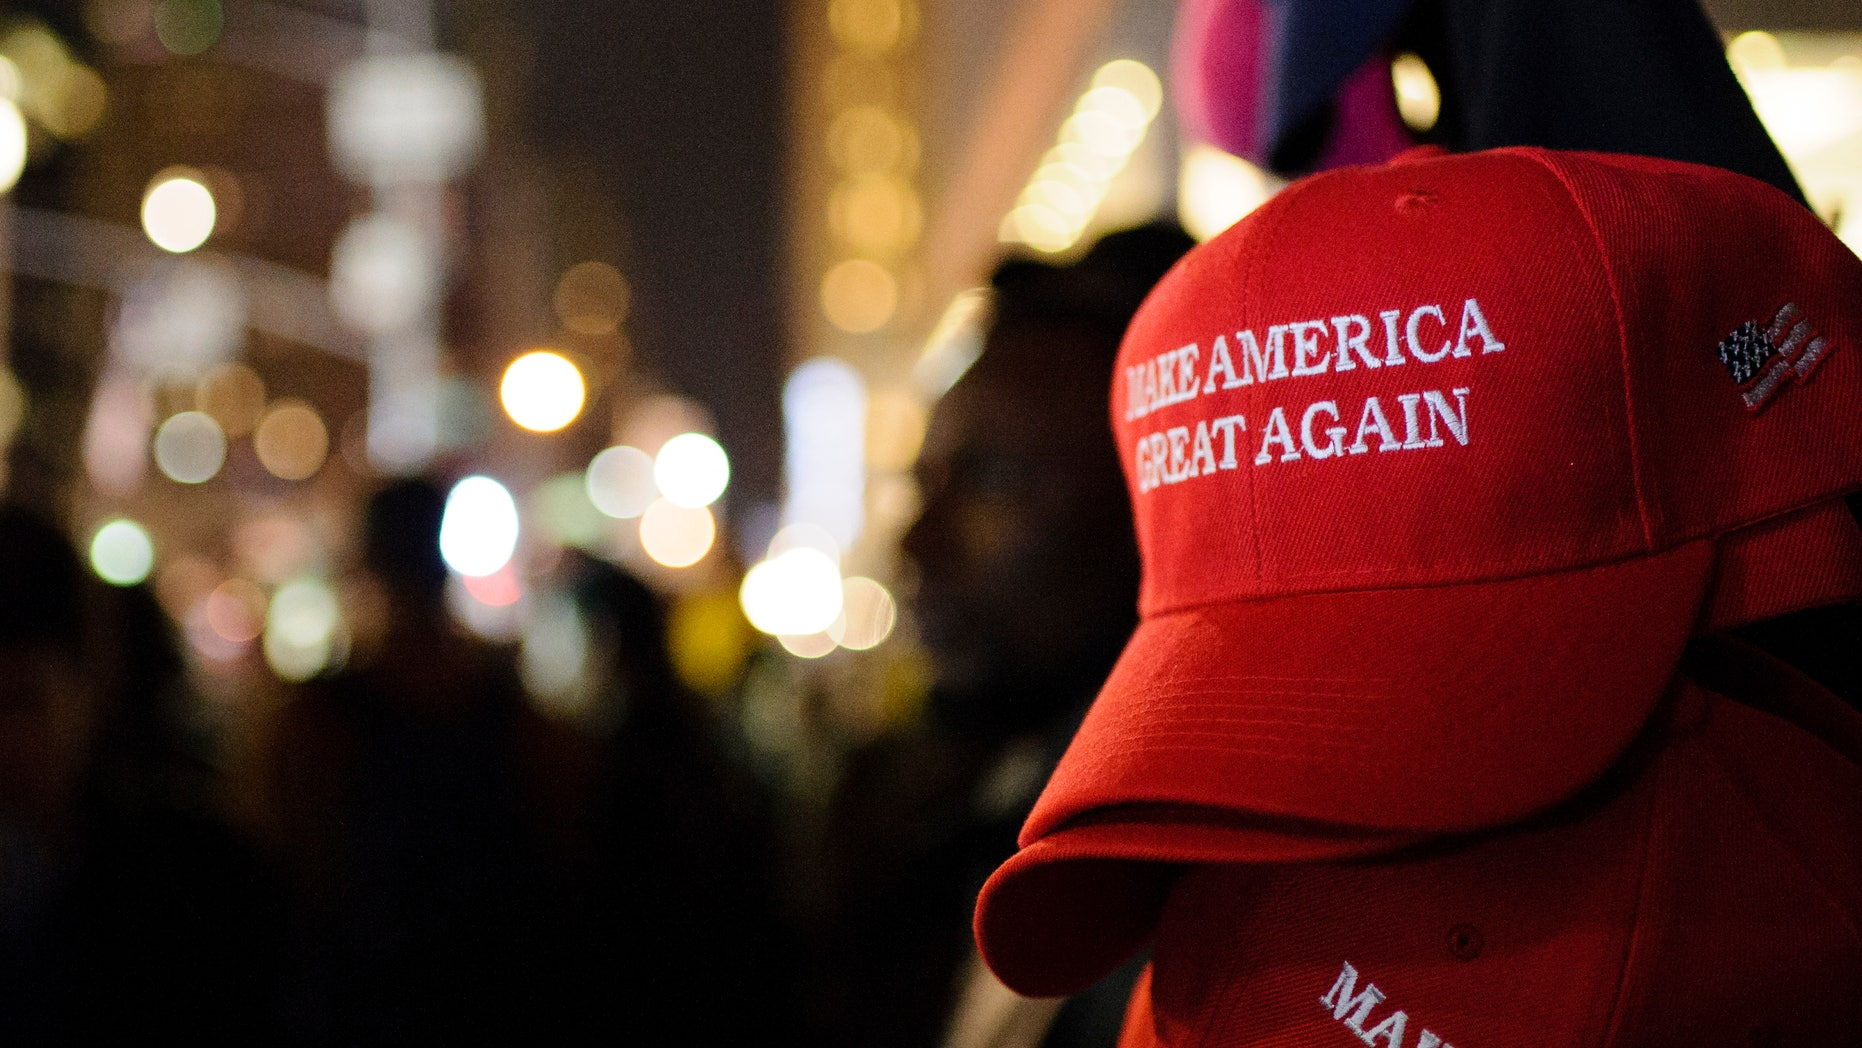 California restaurant owner bans 'Make America Great Again' hats